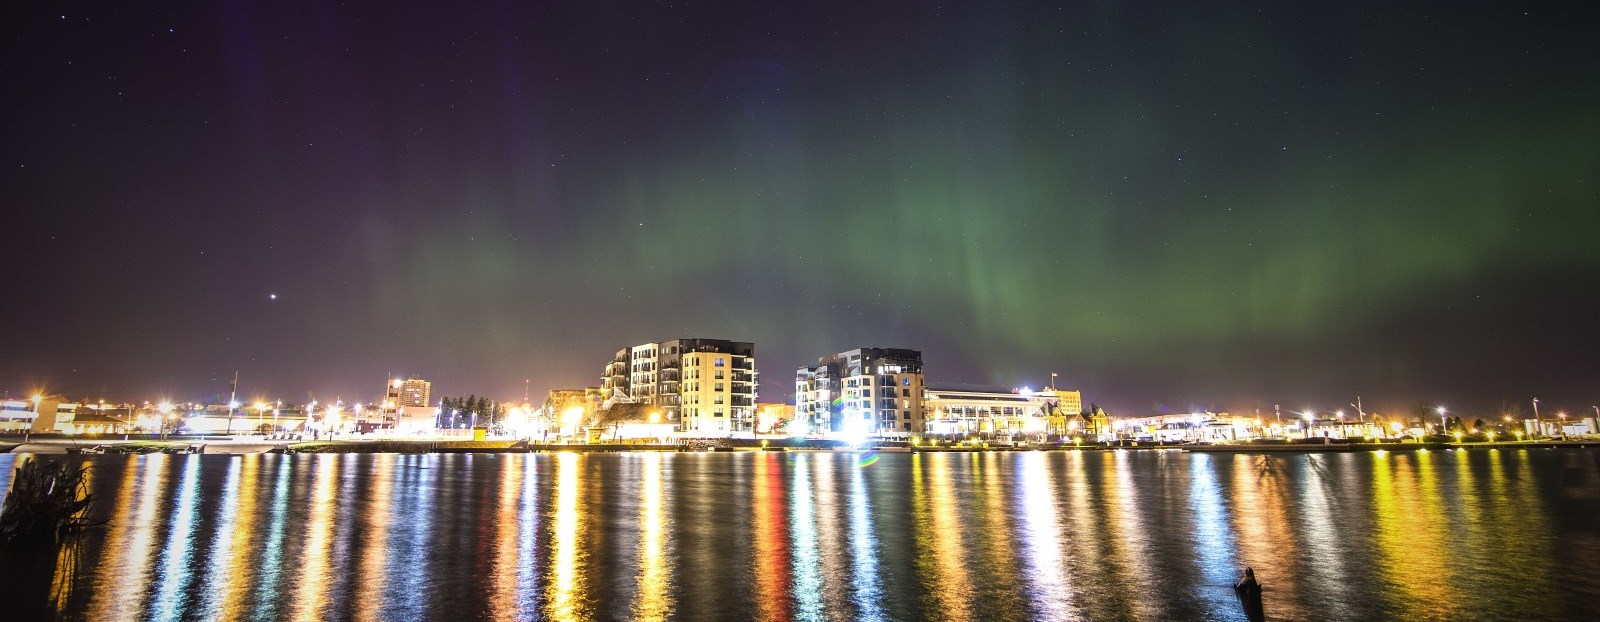 Northern Lights from water